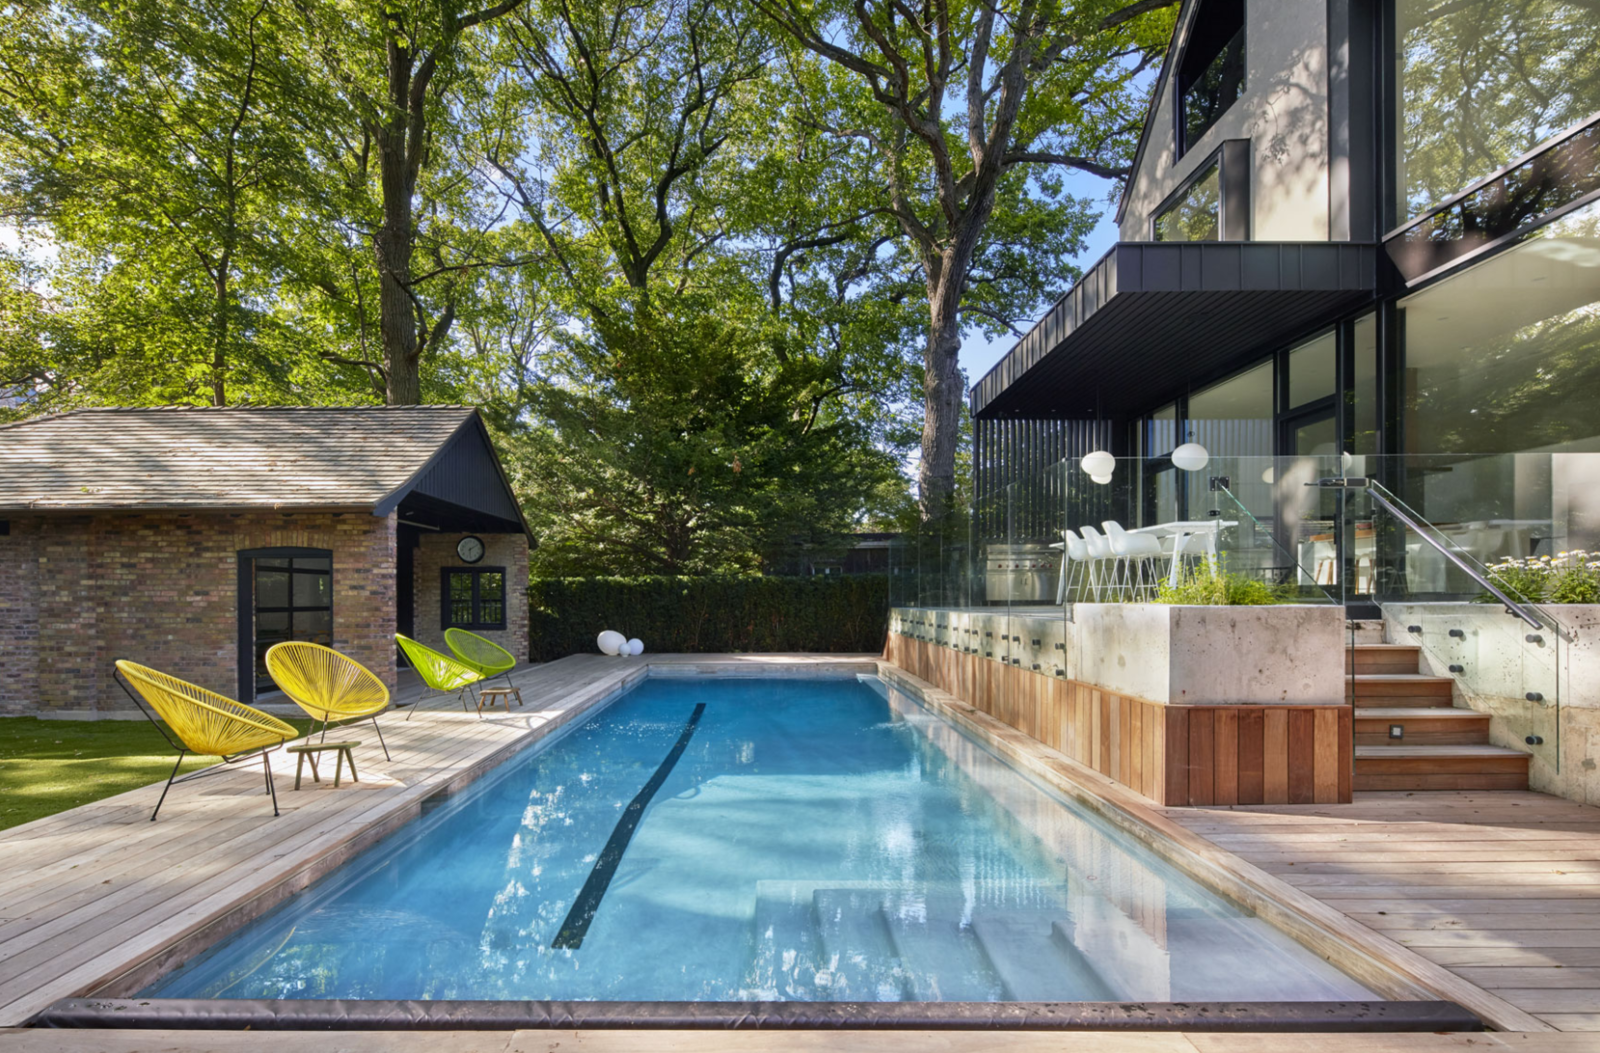 Photo 1 of 4 in From Front to Back, This Toronto Home Literally Merges Heritage and Modernism